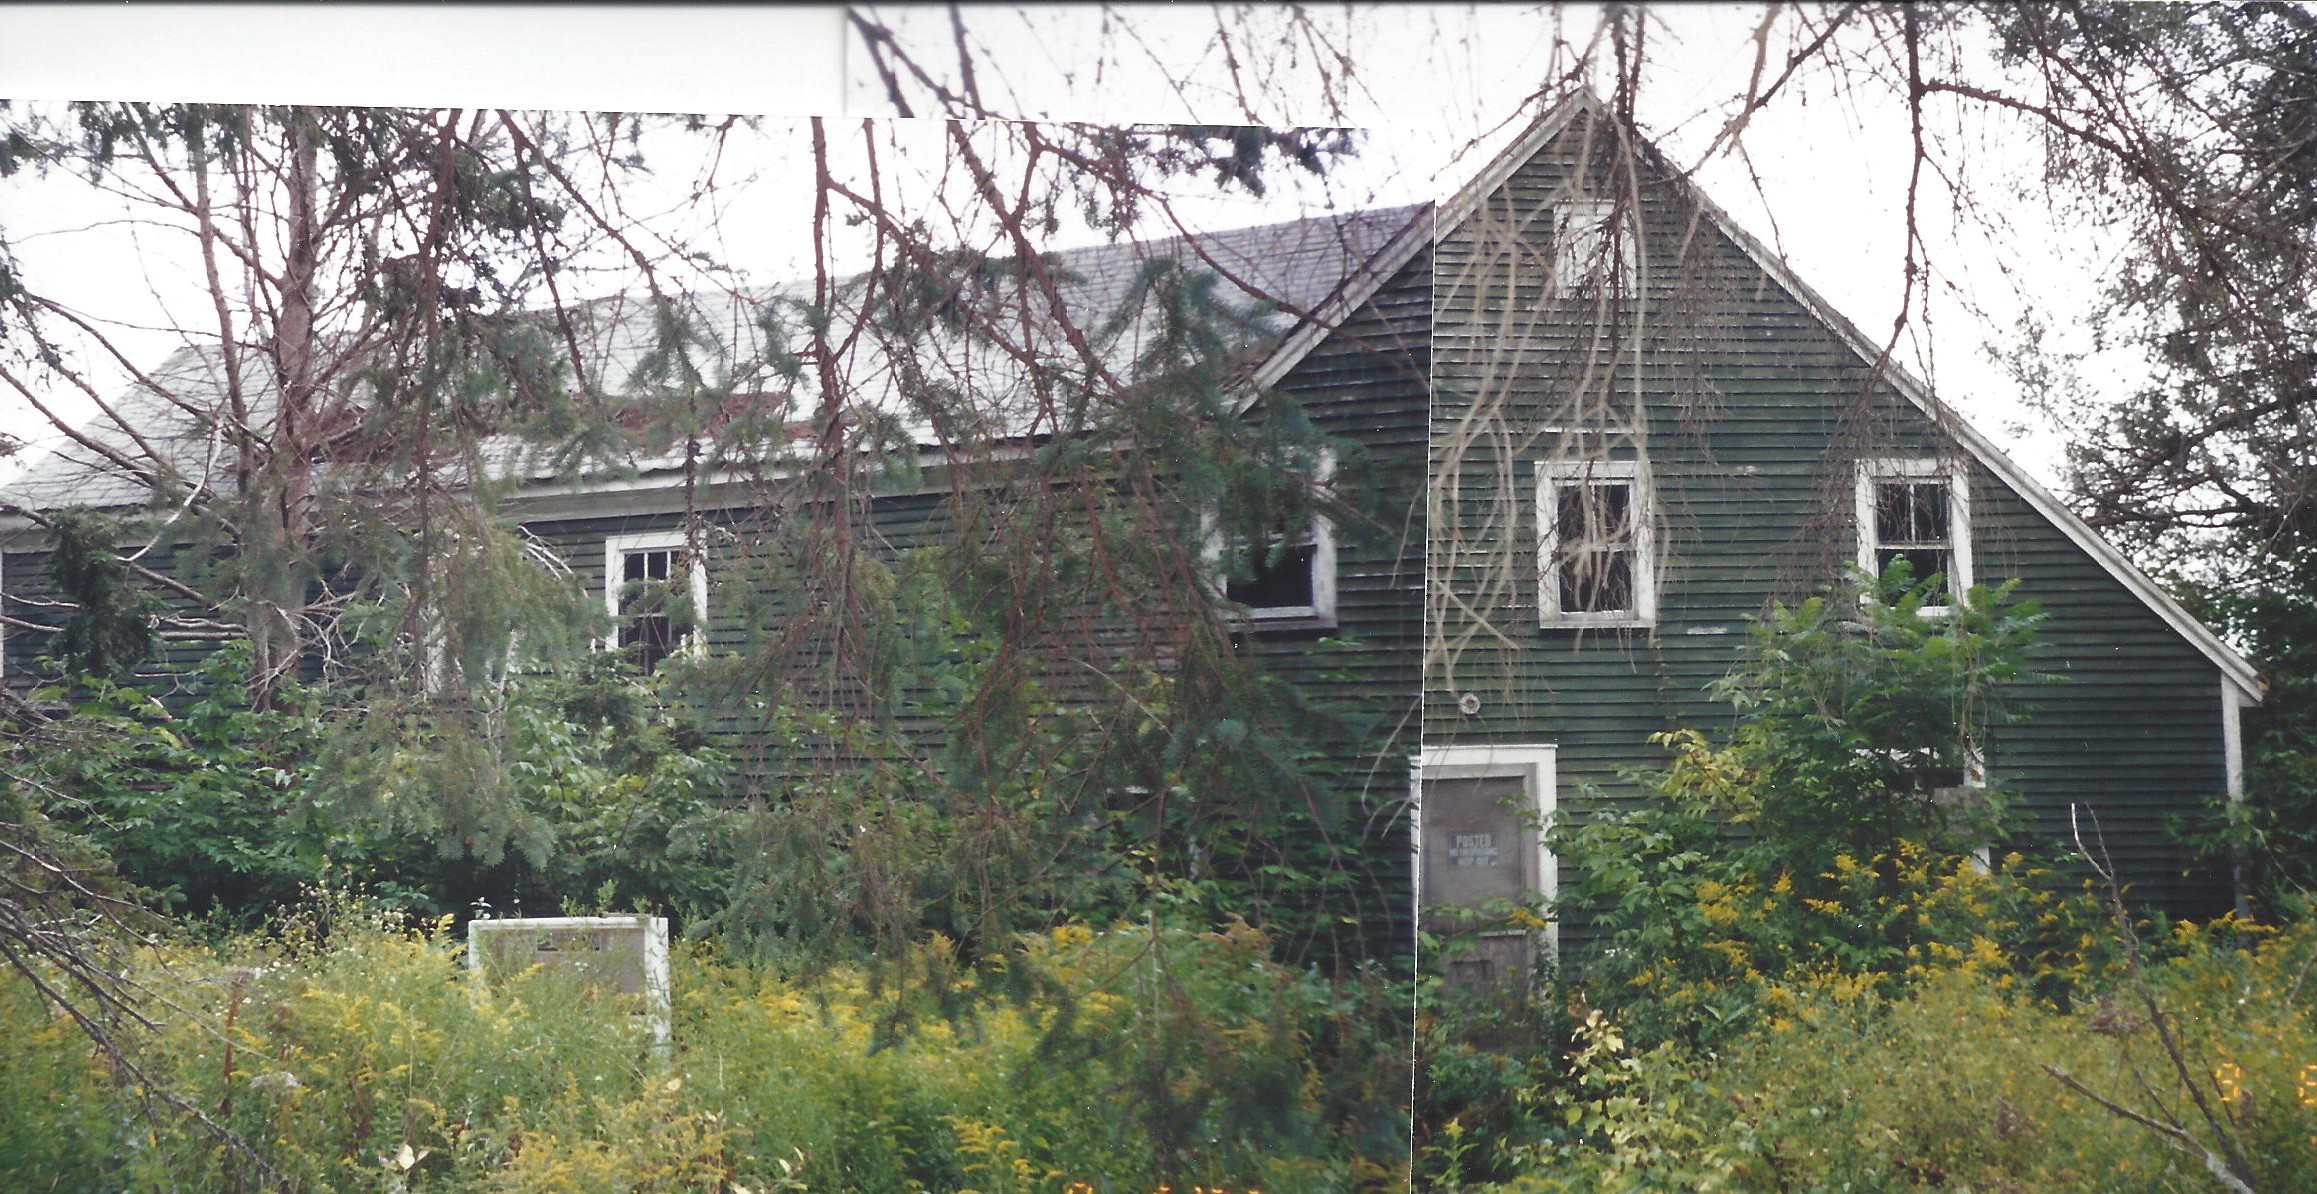 Prior to renovations 2003